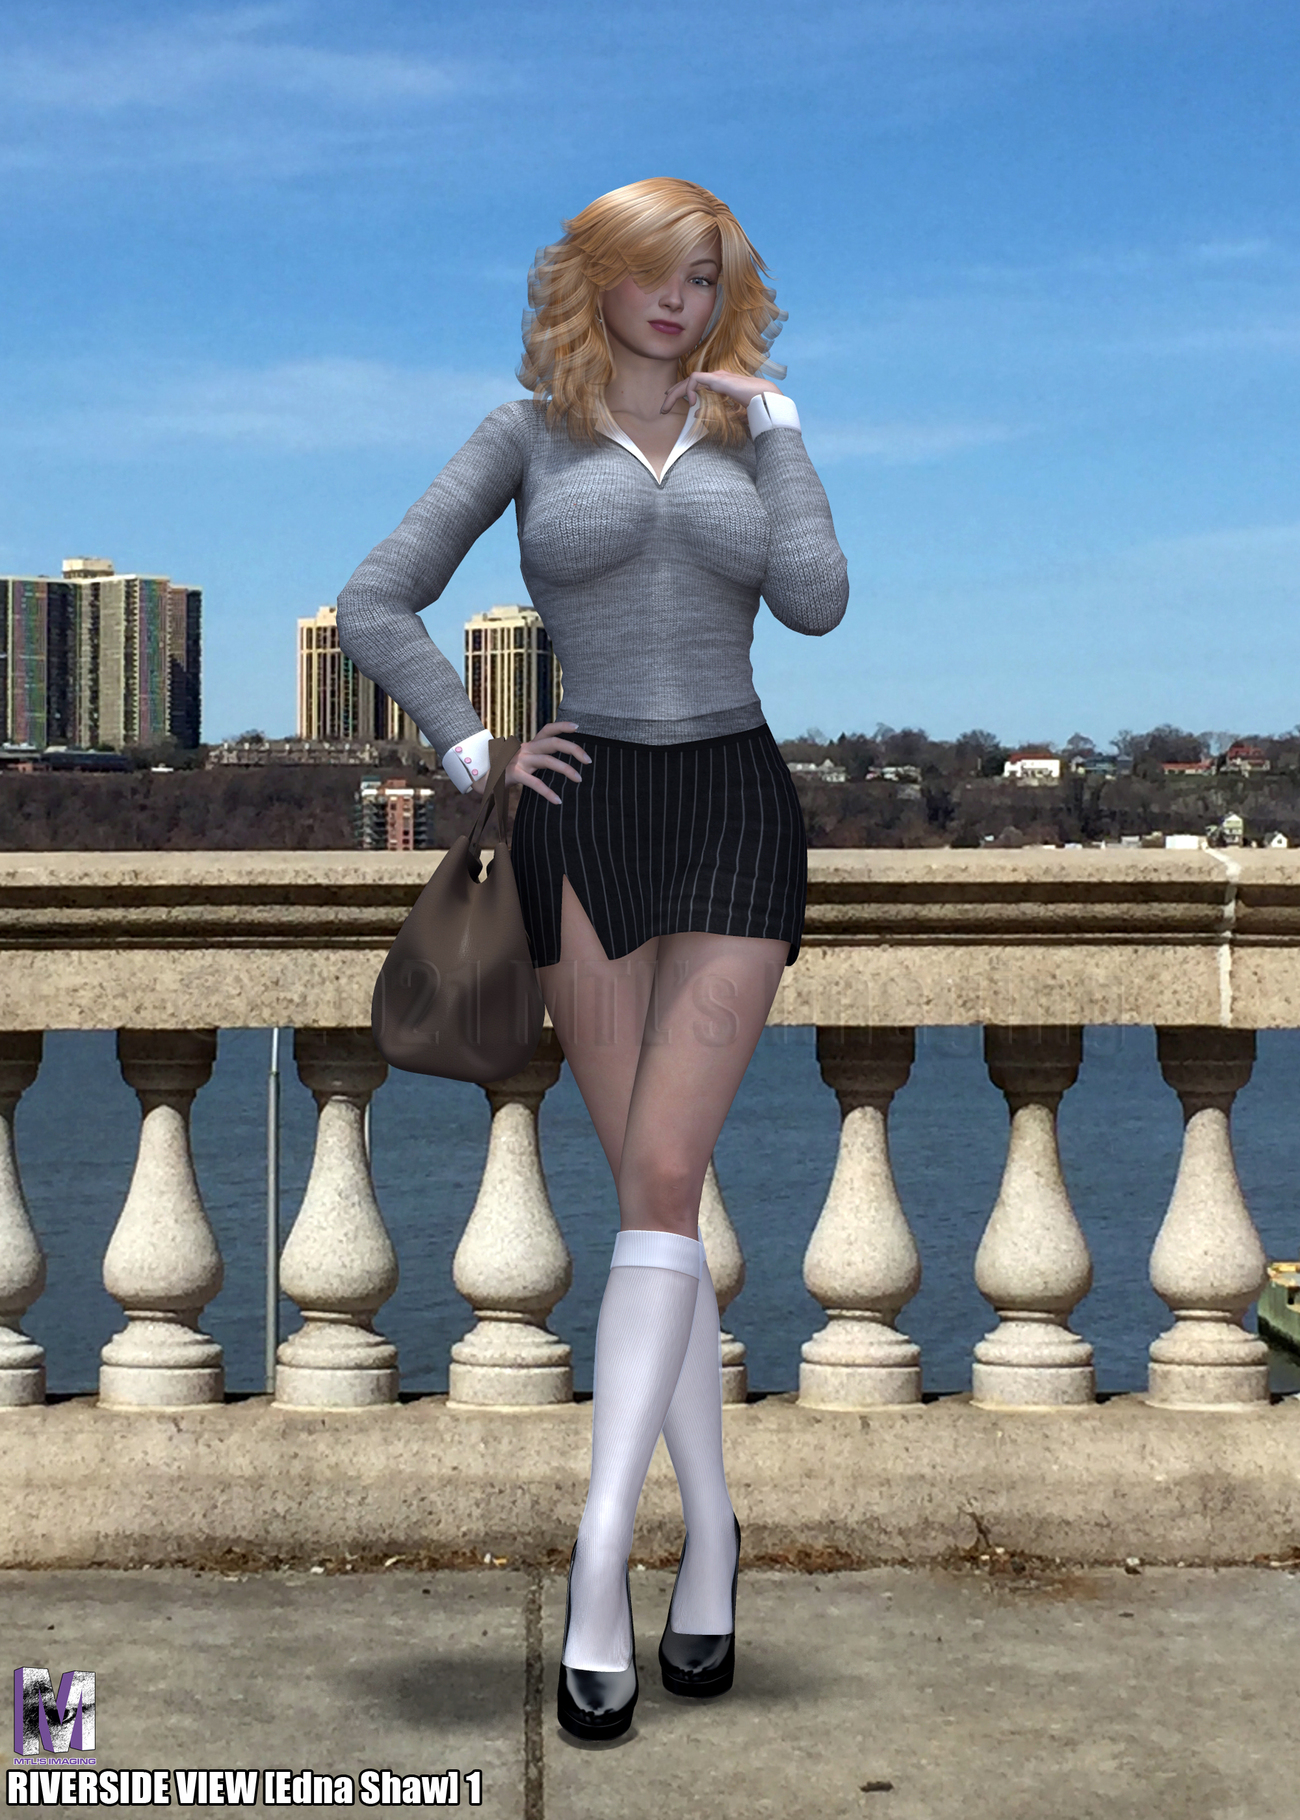 Riverside View [Edna Shaw] 1 by tetrasnake